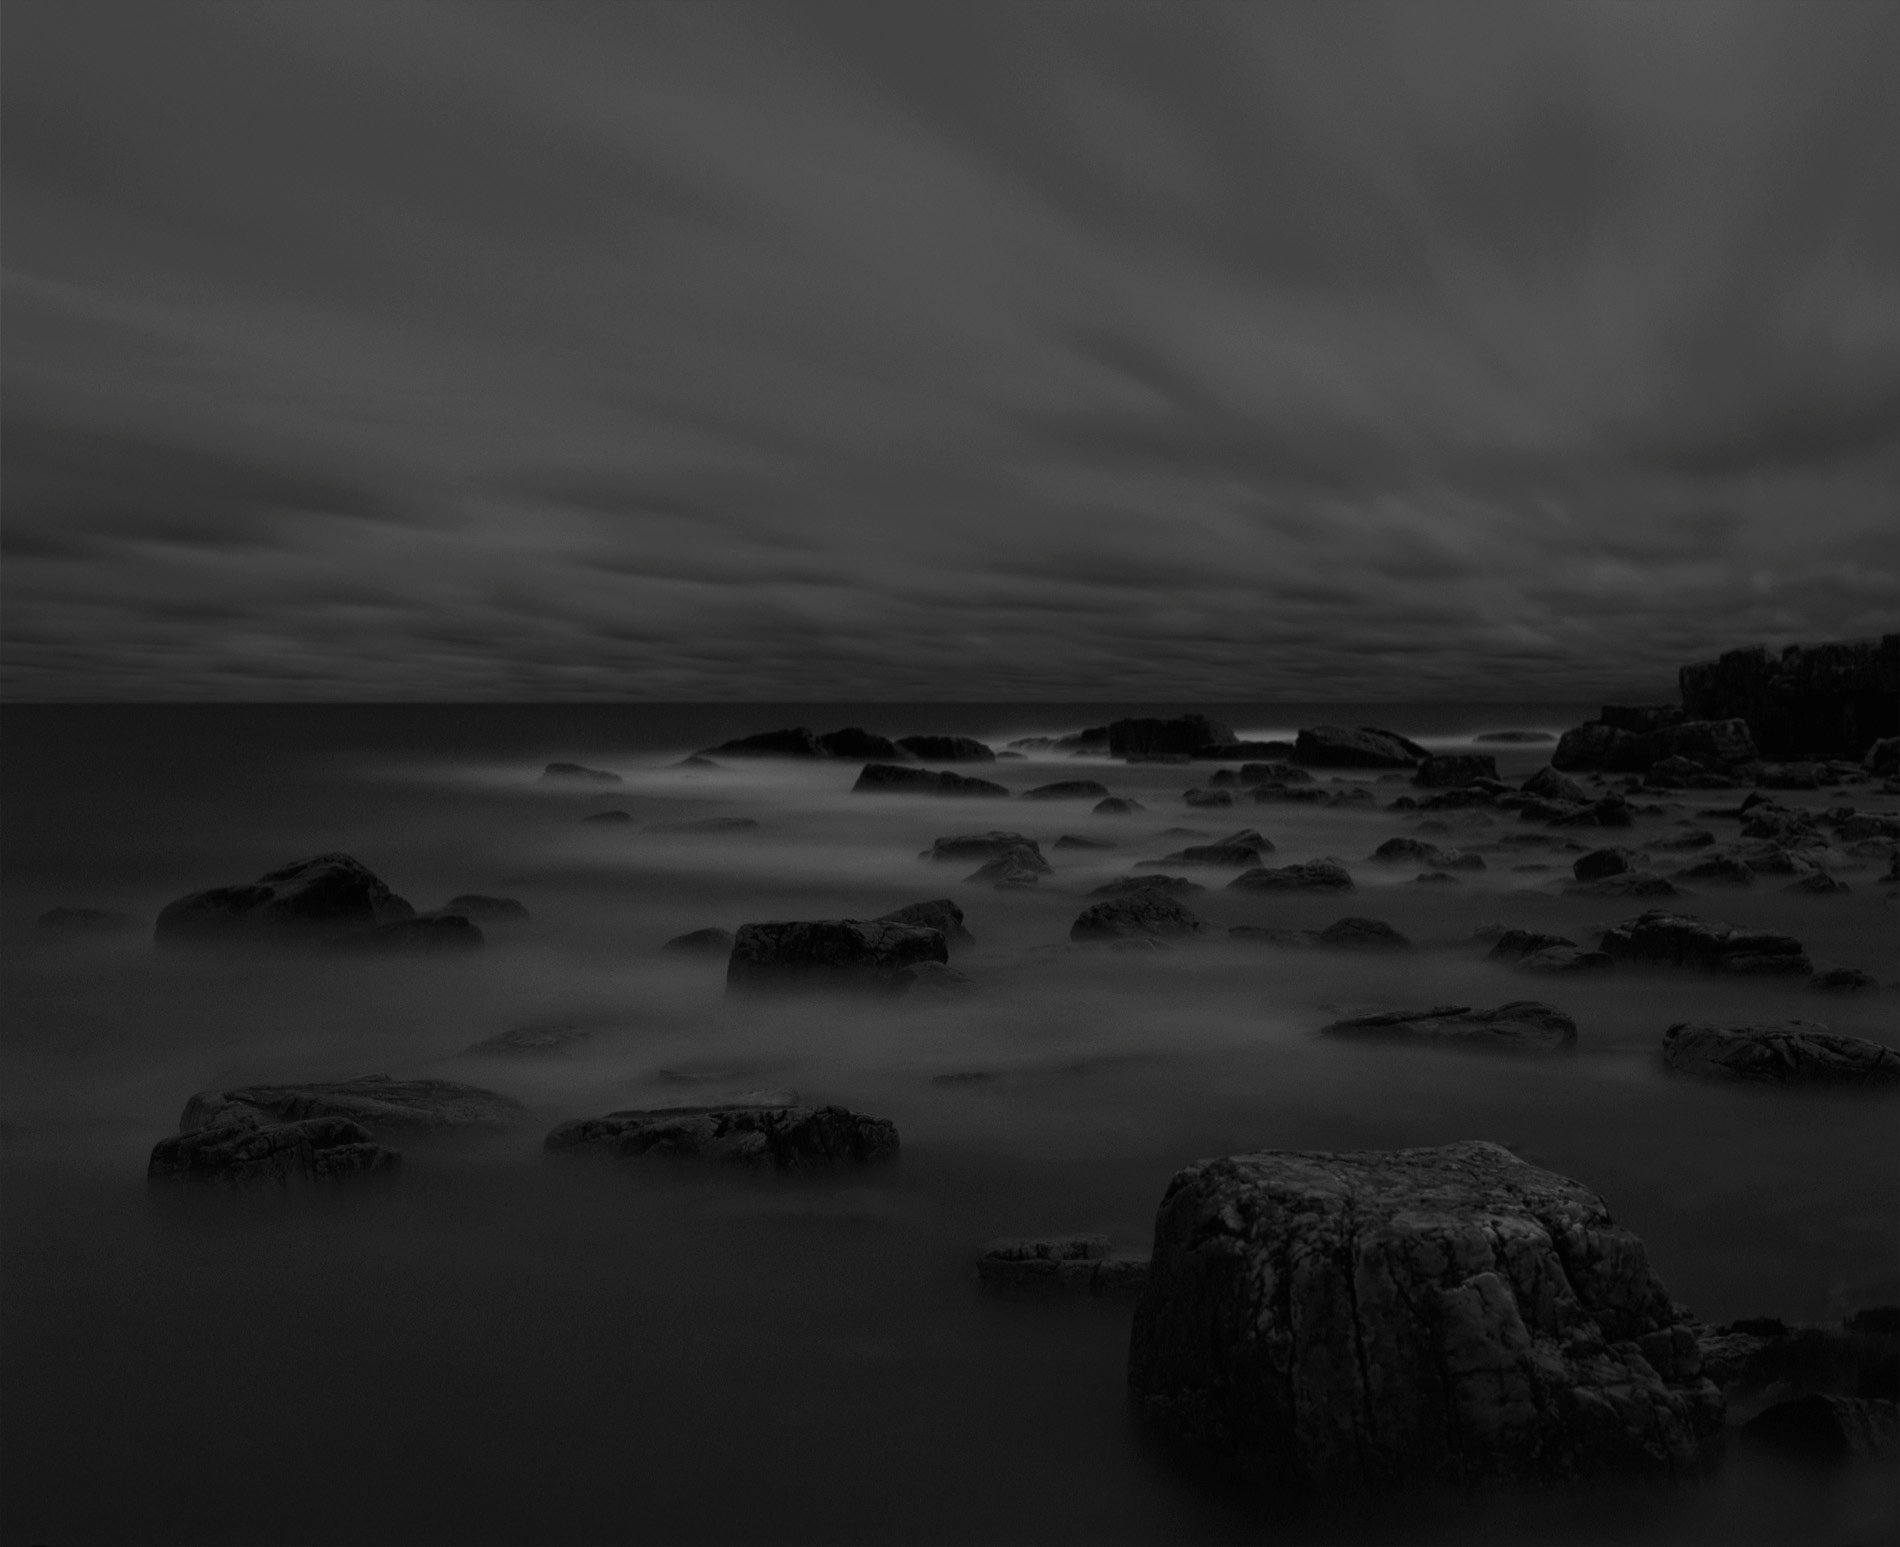 Black rocks & water 02